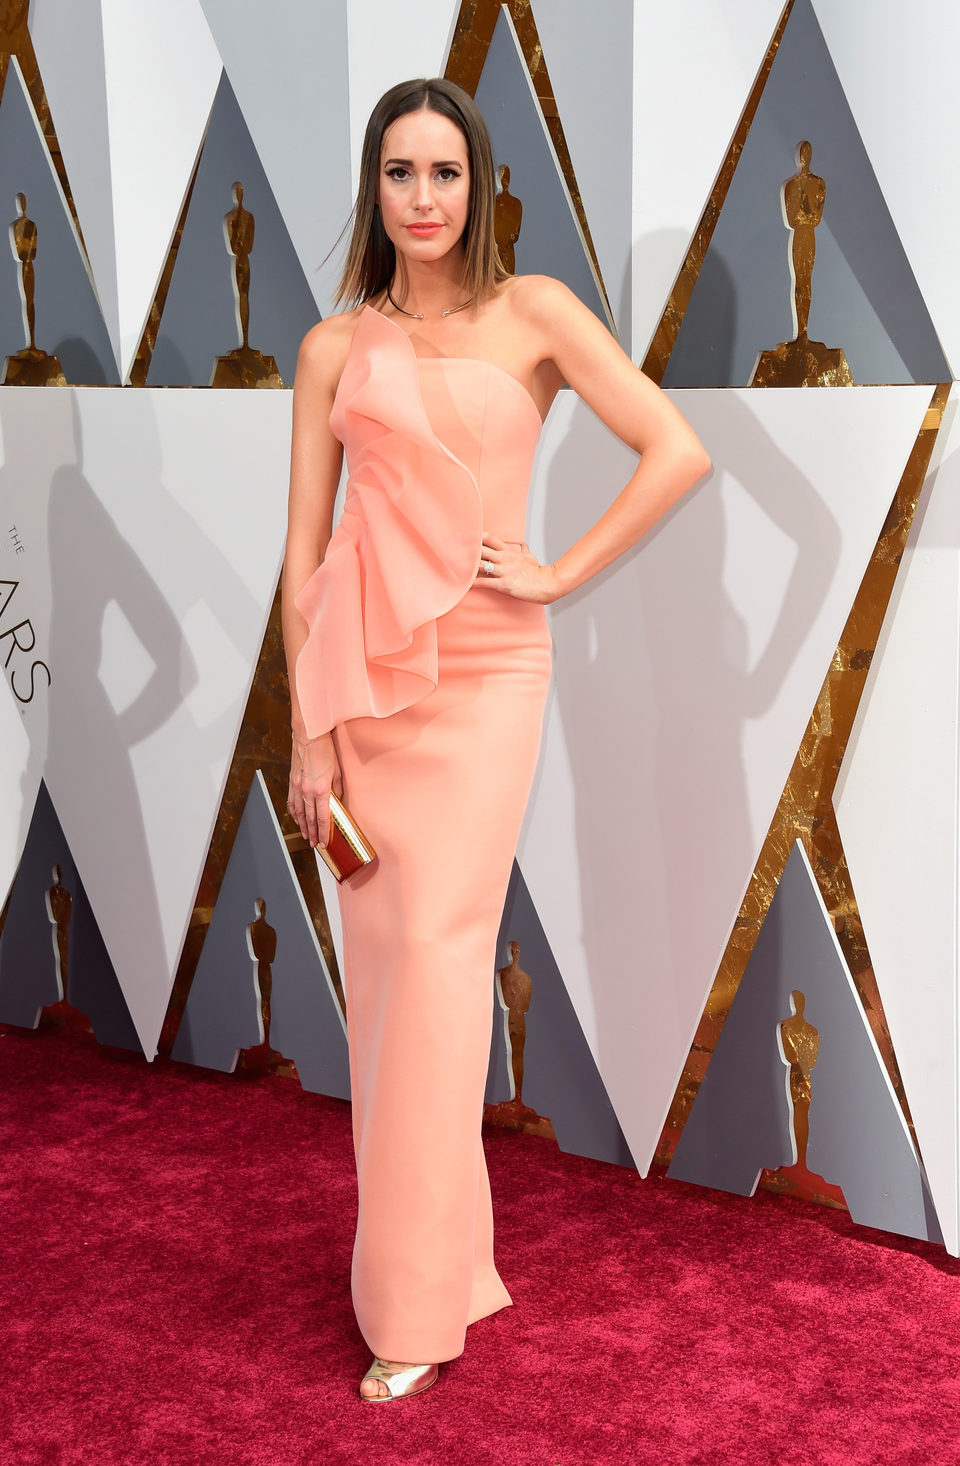 Louise Roe at the Oscars 2016 red carpet